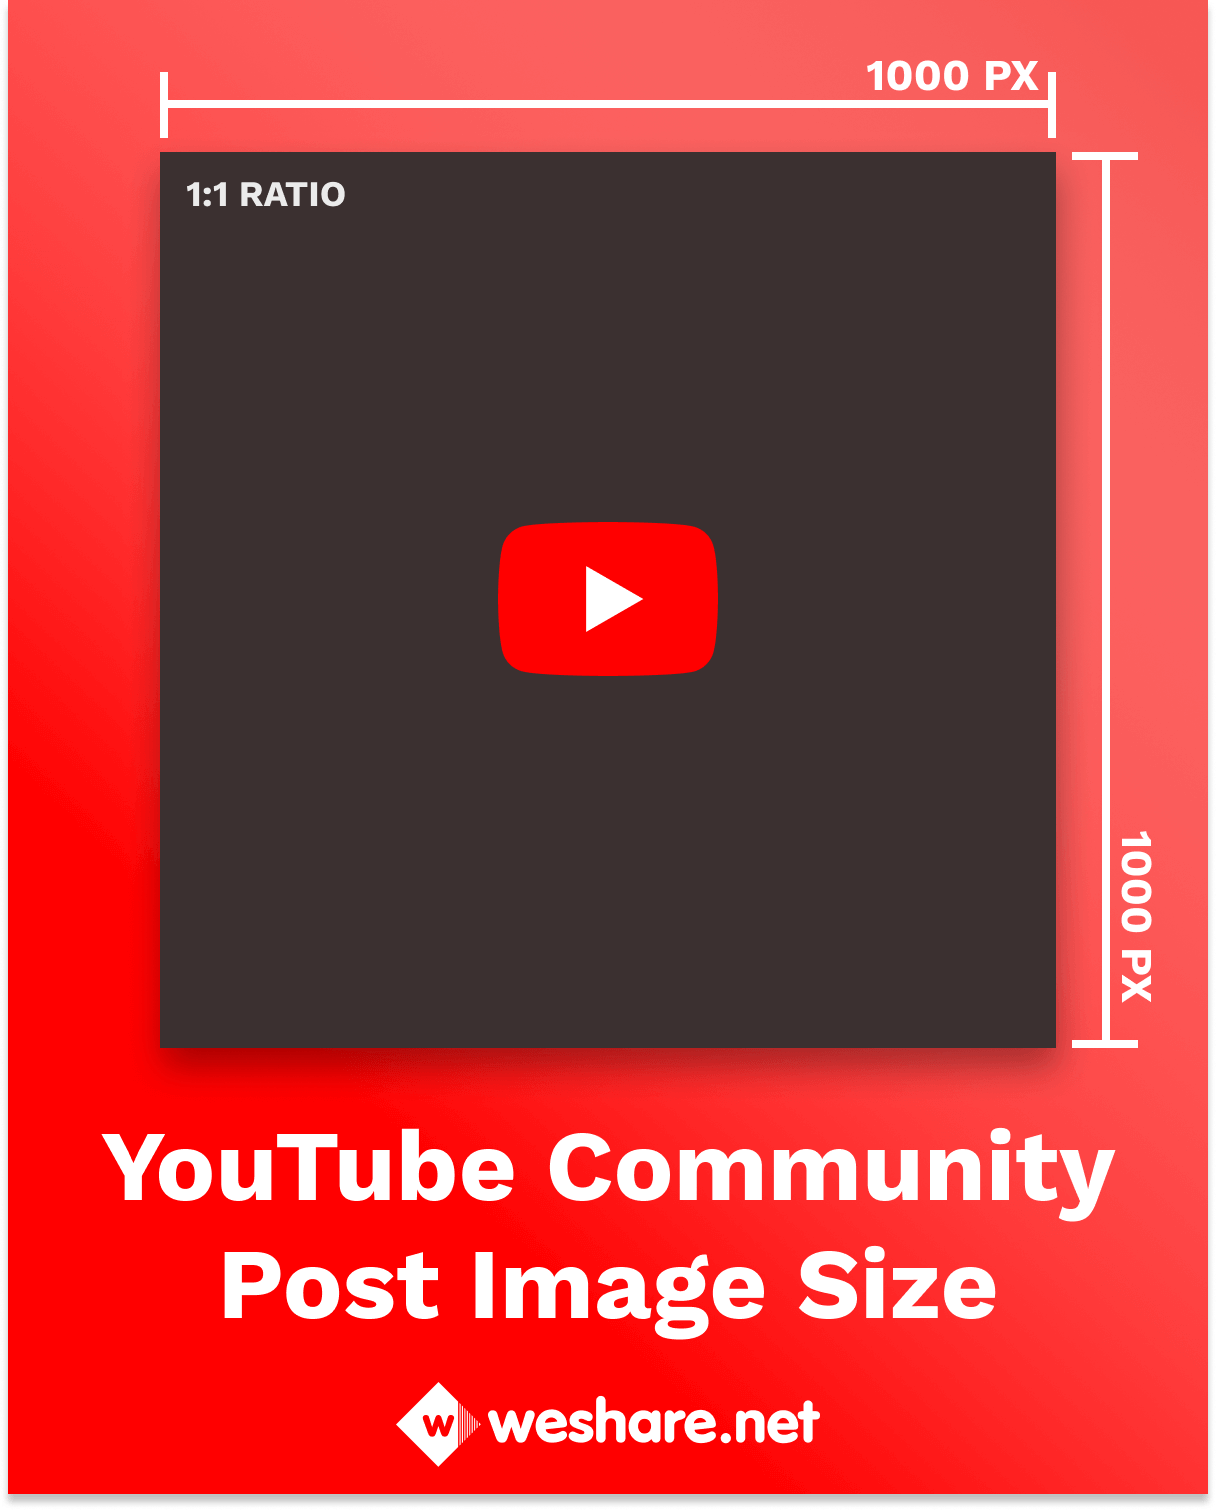 YouTube Community Post Image Size